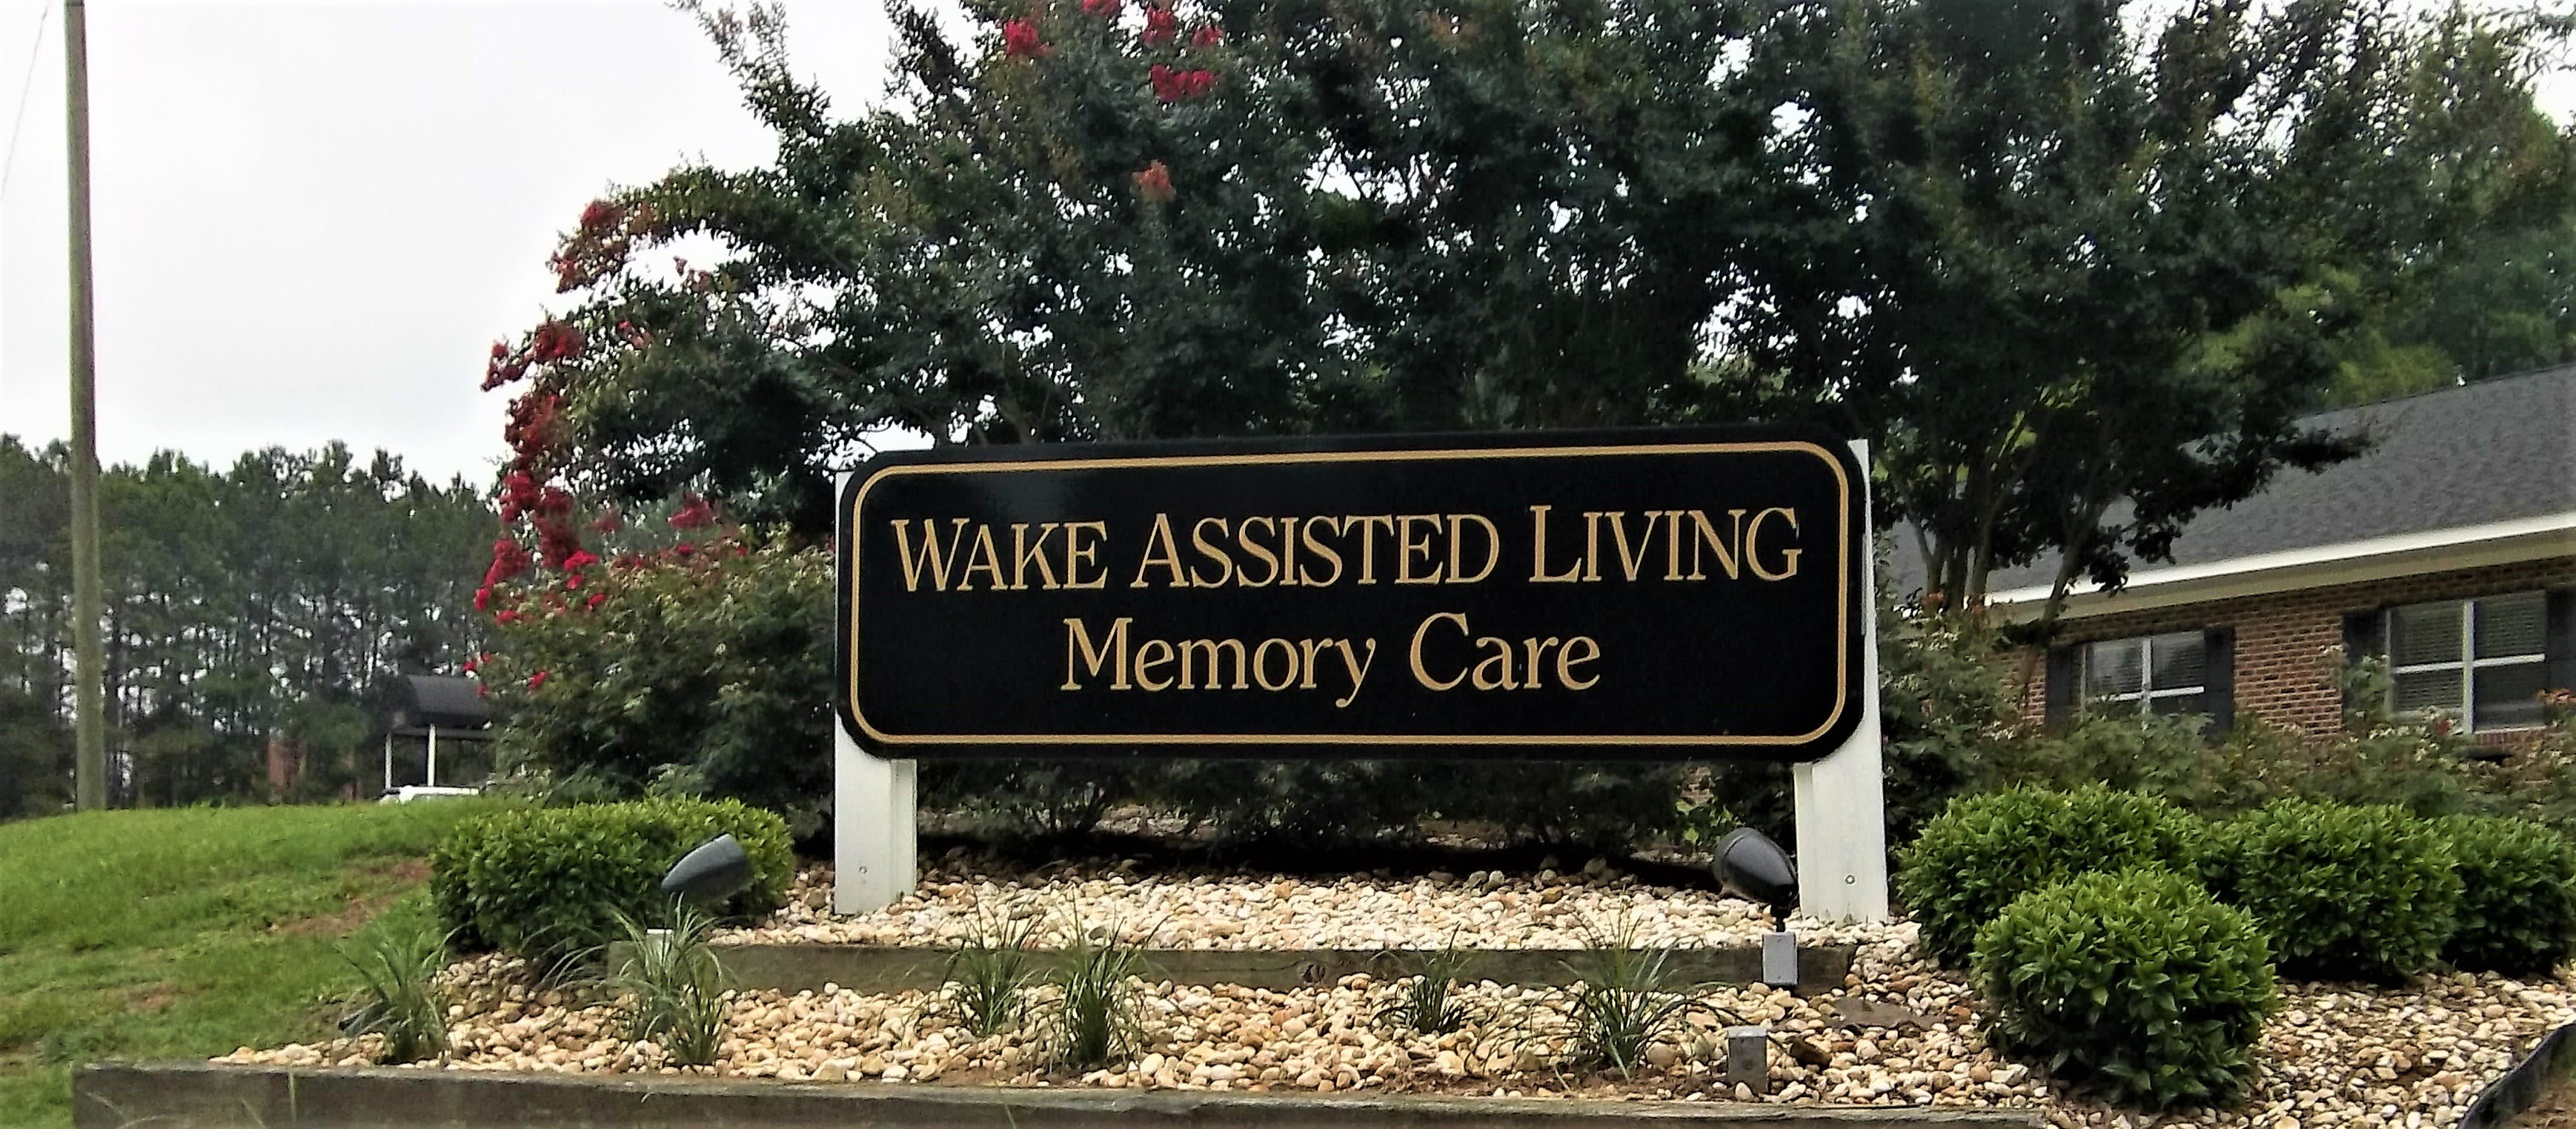 Photo 1 of Wake Assisted Living Memory Care